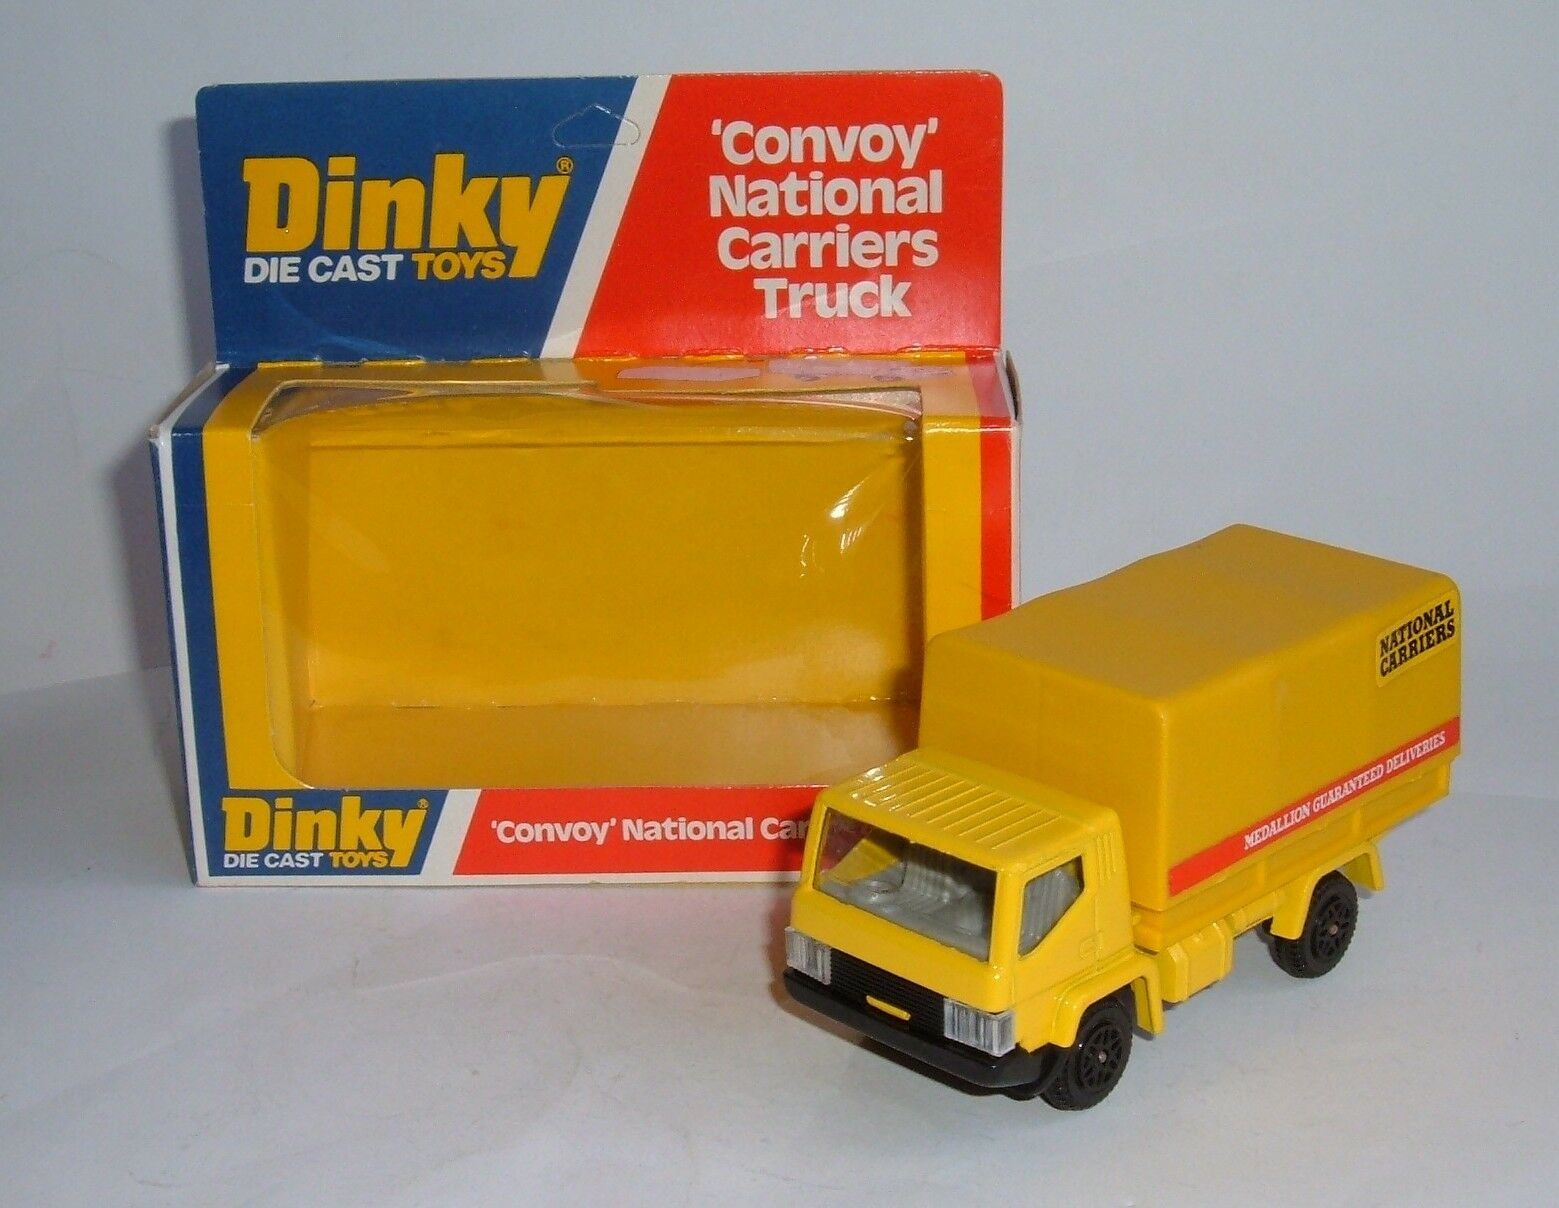 Dinky Toys No. 383, 'Convoy' National Carriers Truck, - Superb